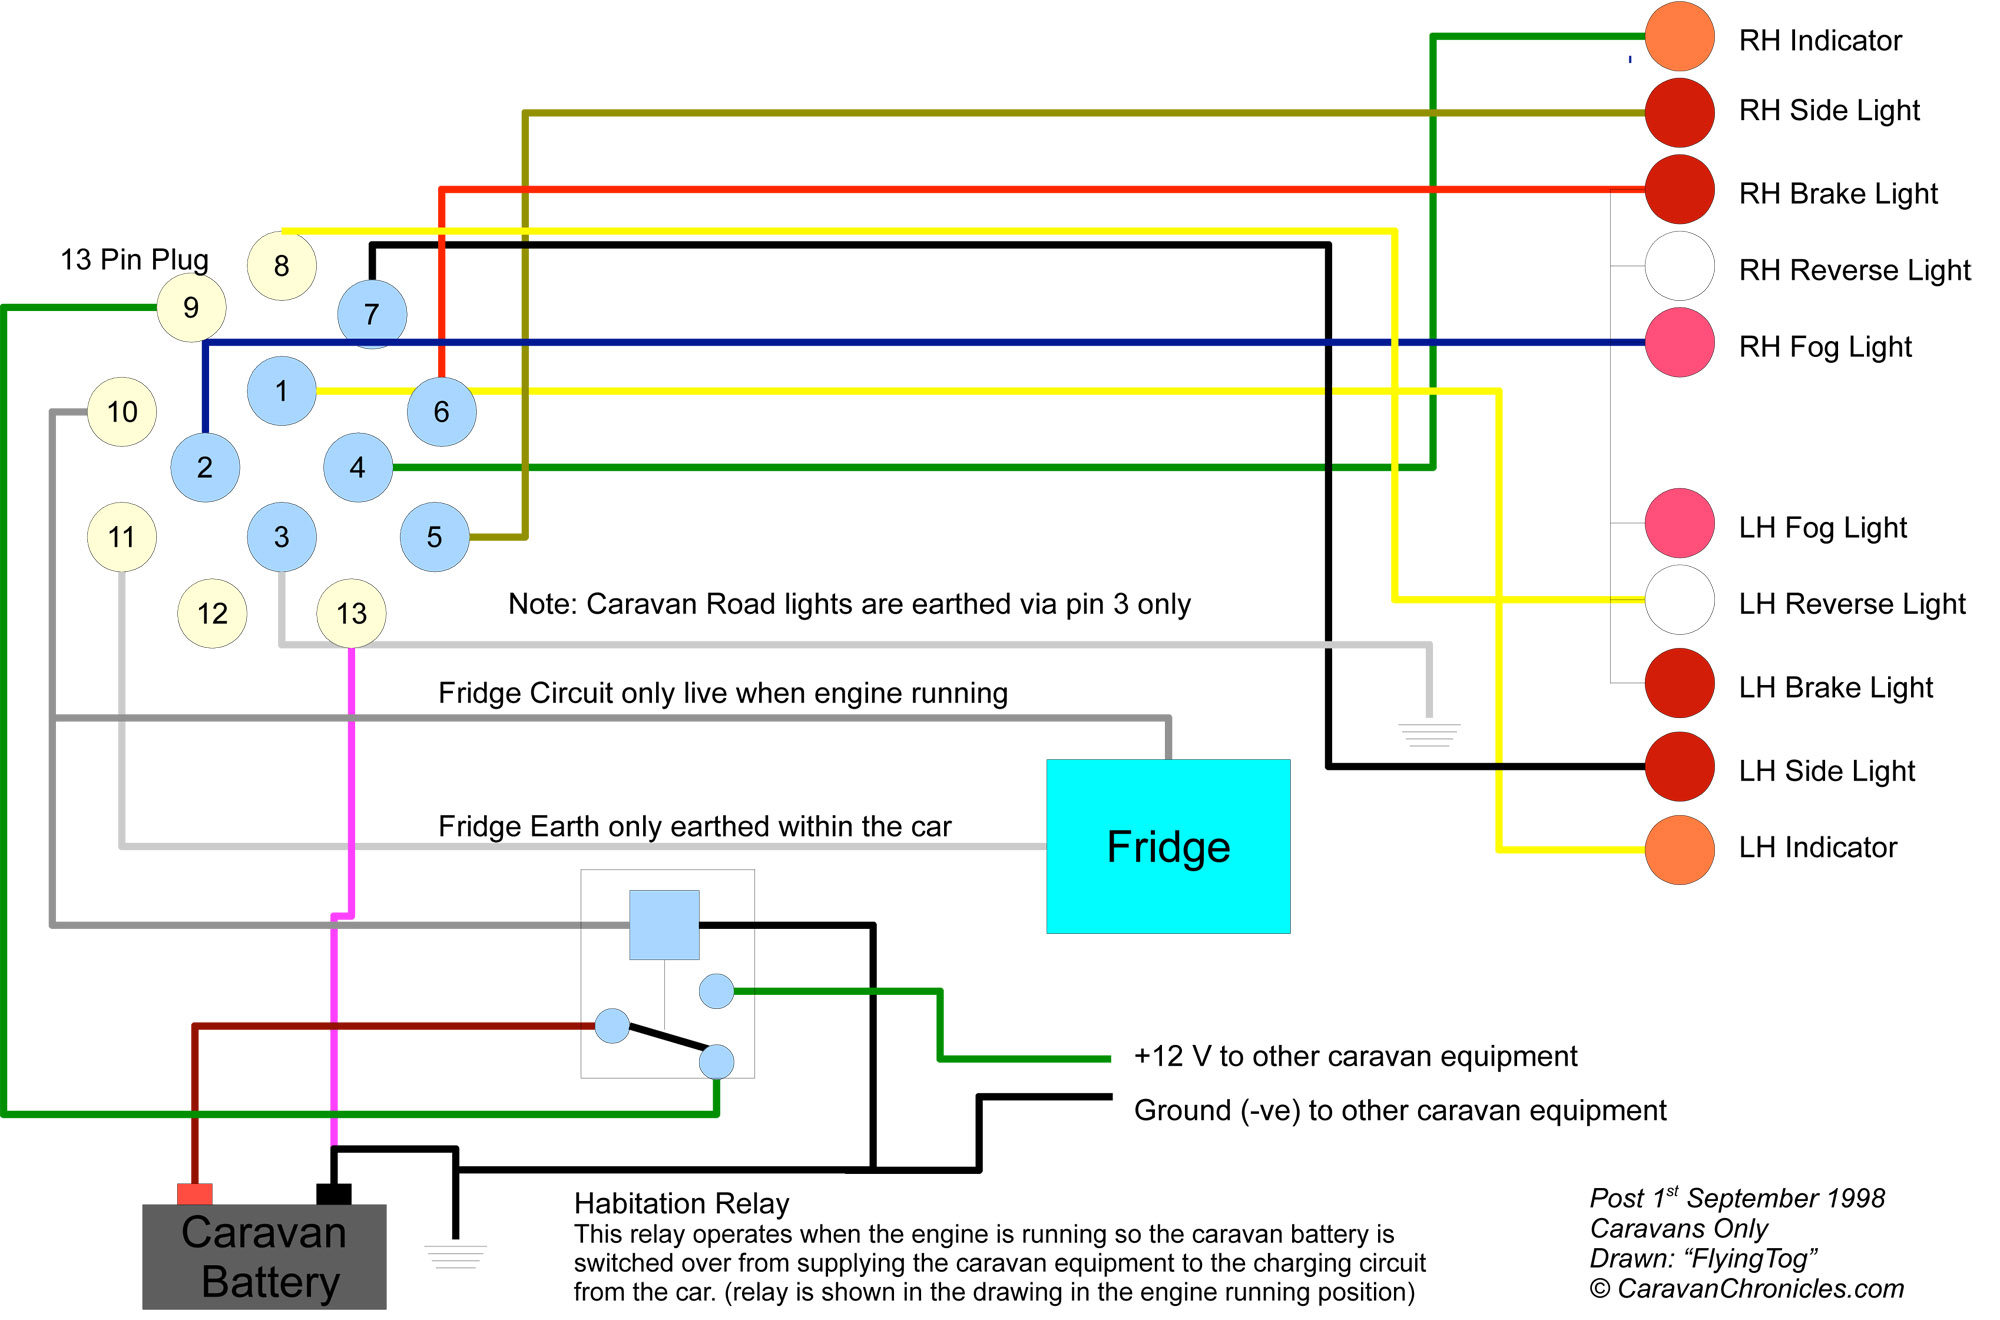 caravan wiring 13 pin understanding caravan and tow car electrics caravan chronicles refrigerator wiring diagram pdf at alyssarenee.co